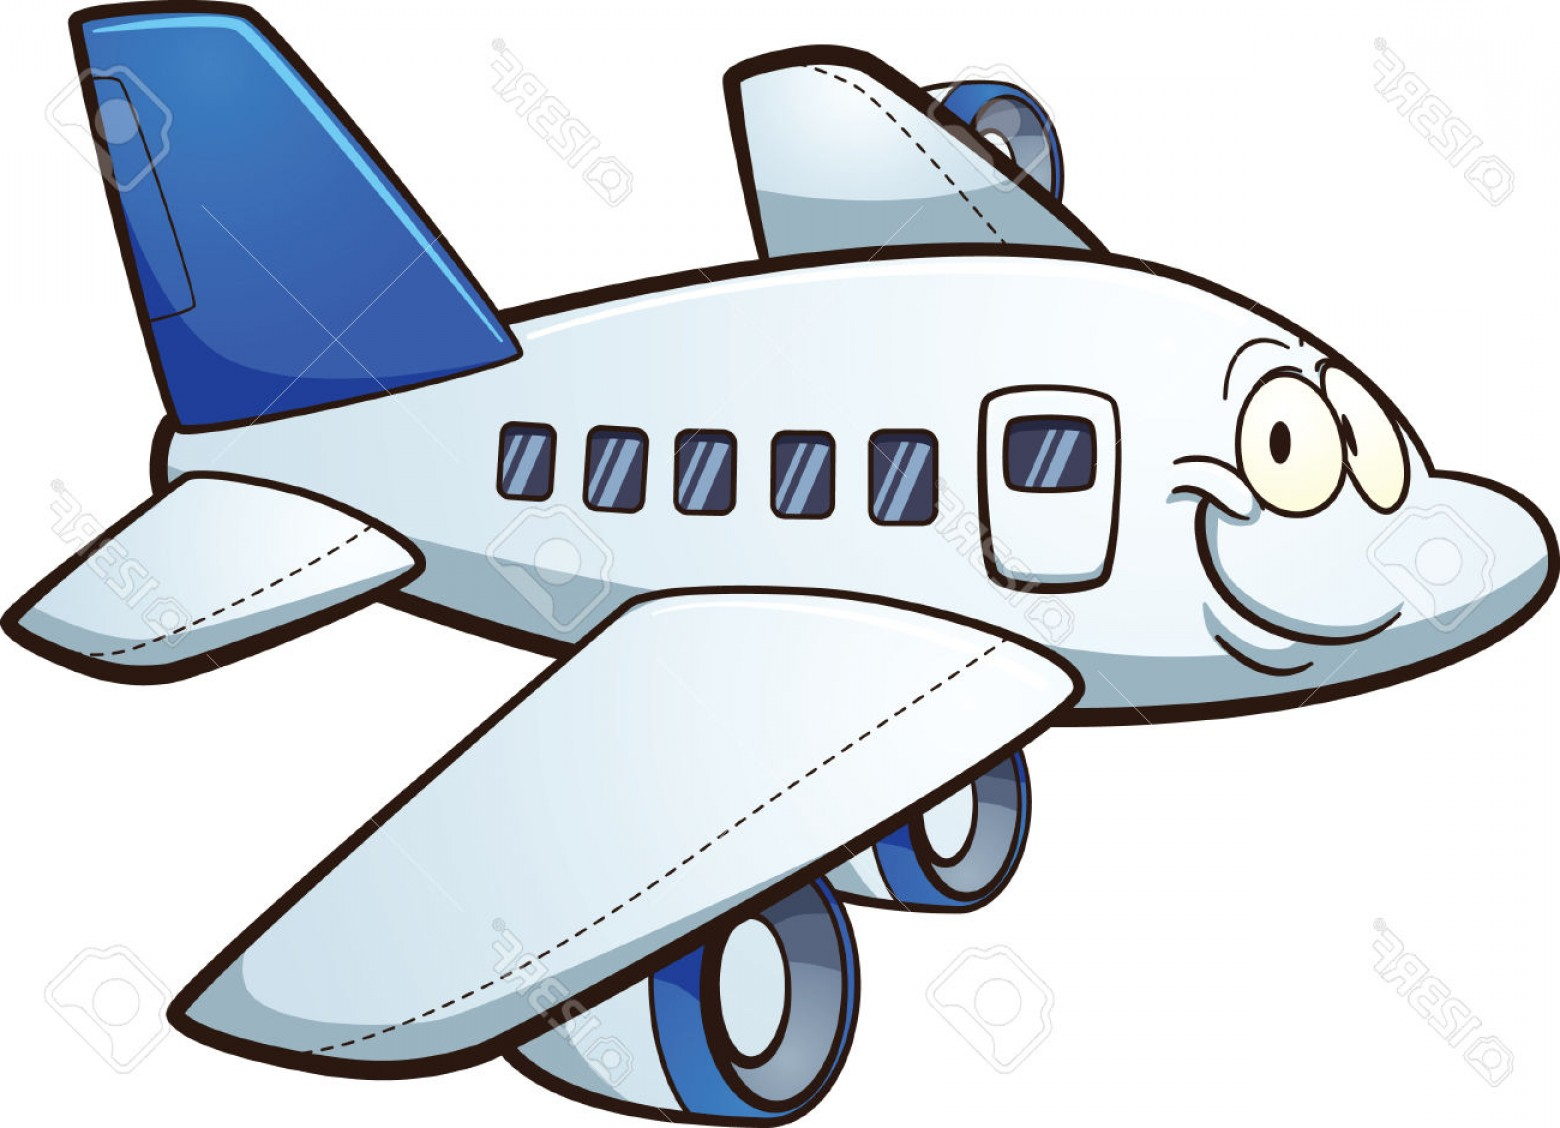 1560x1128 Airplane Cartoon Clipart 101 Clip Art